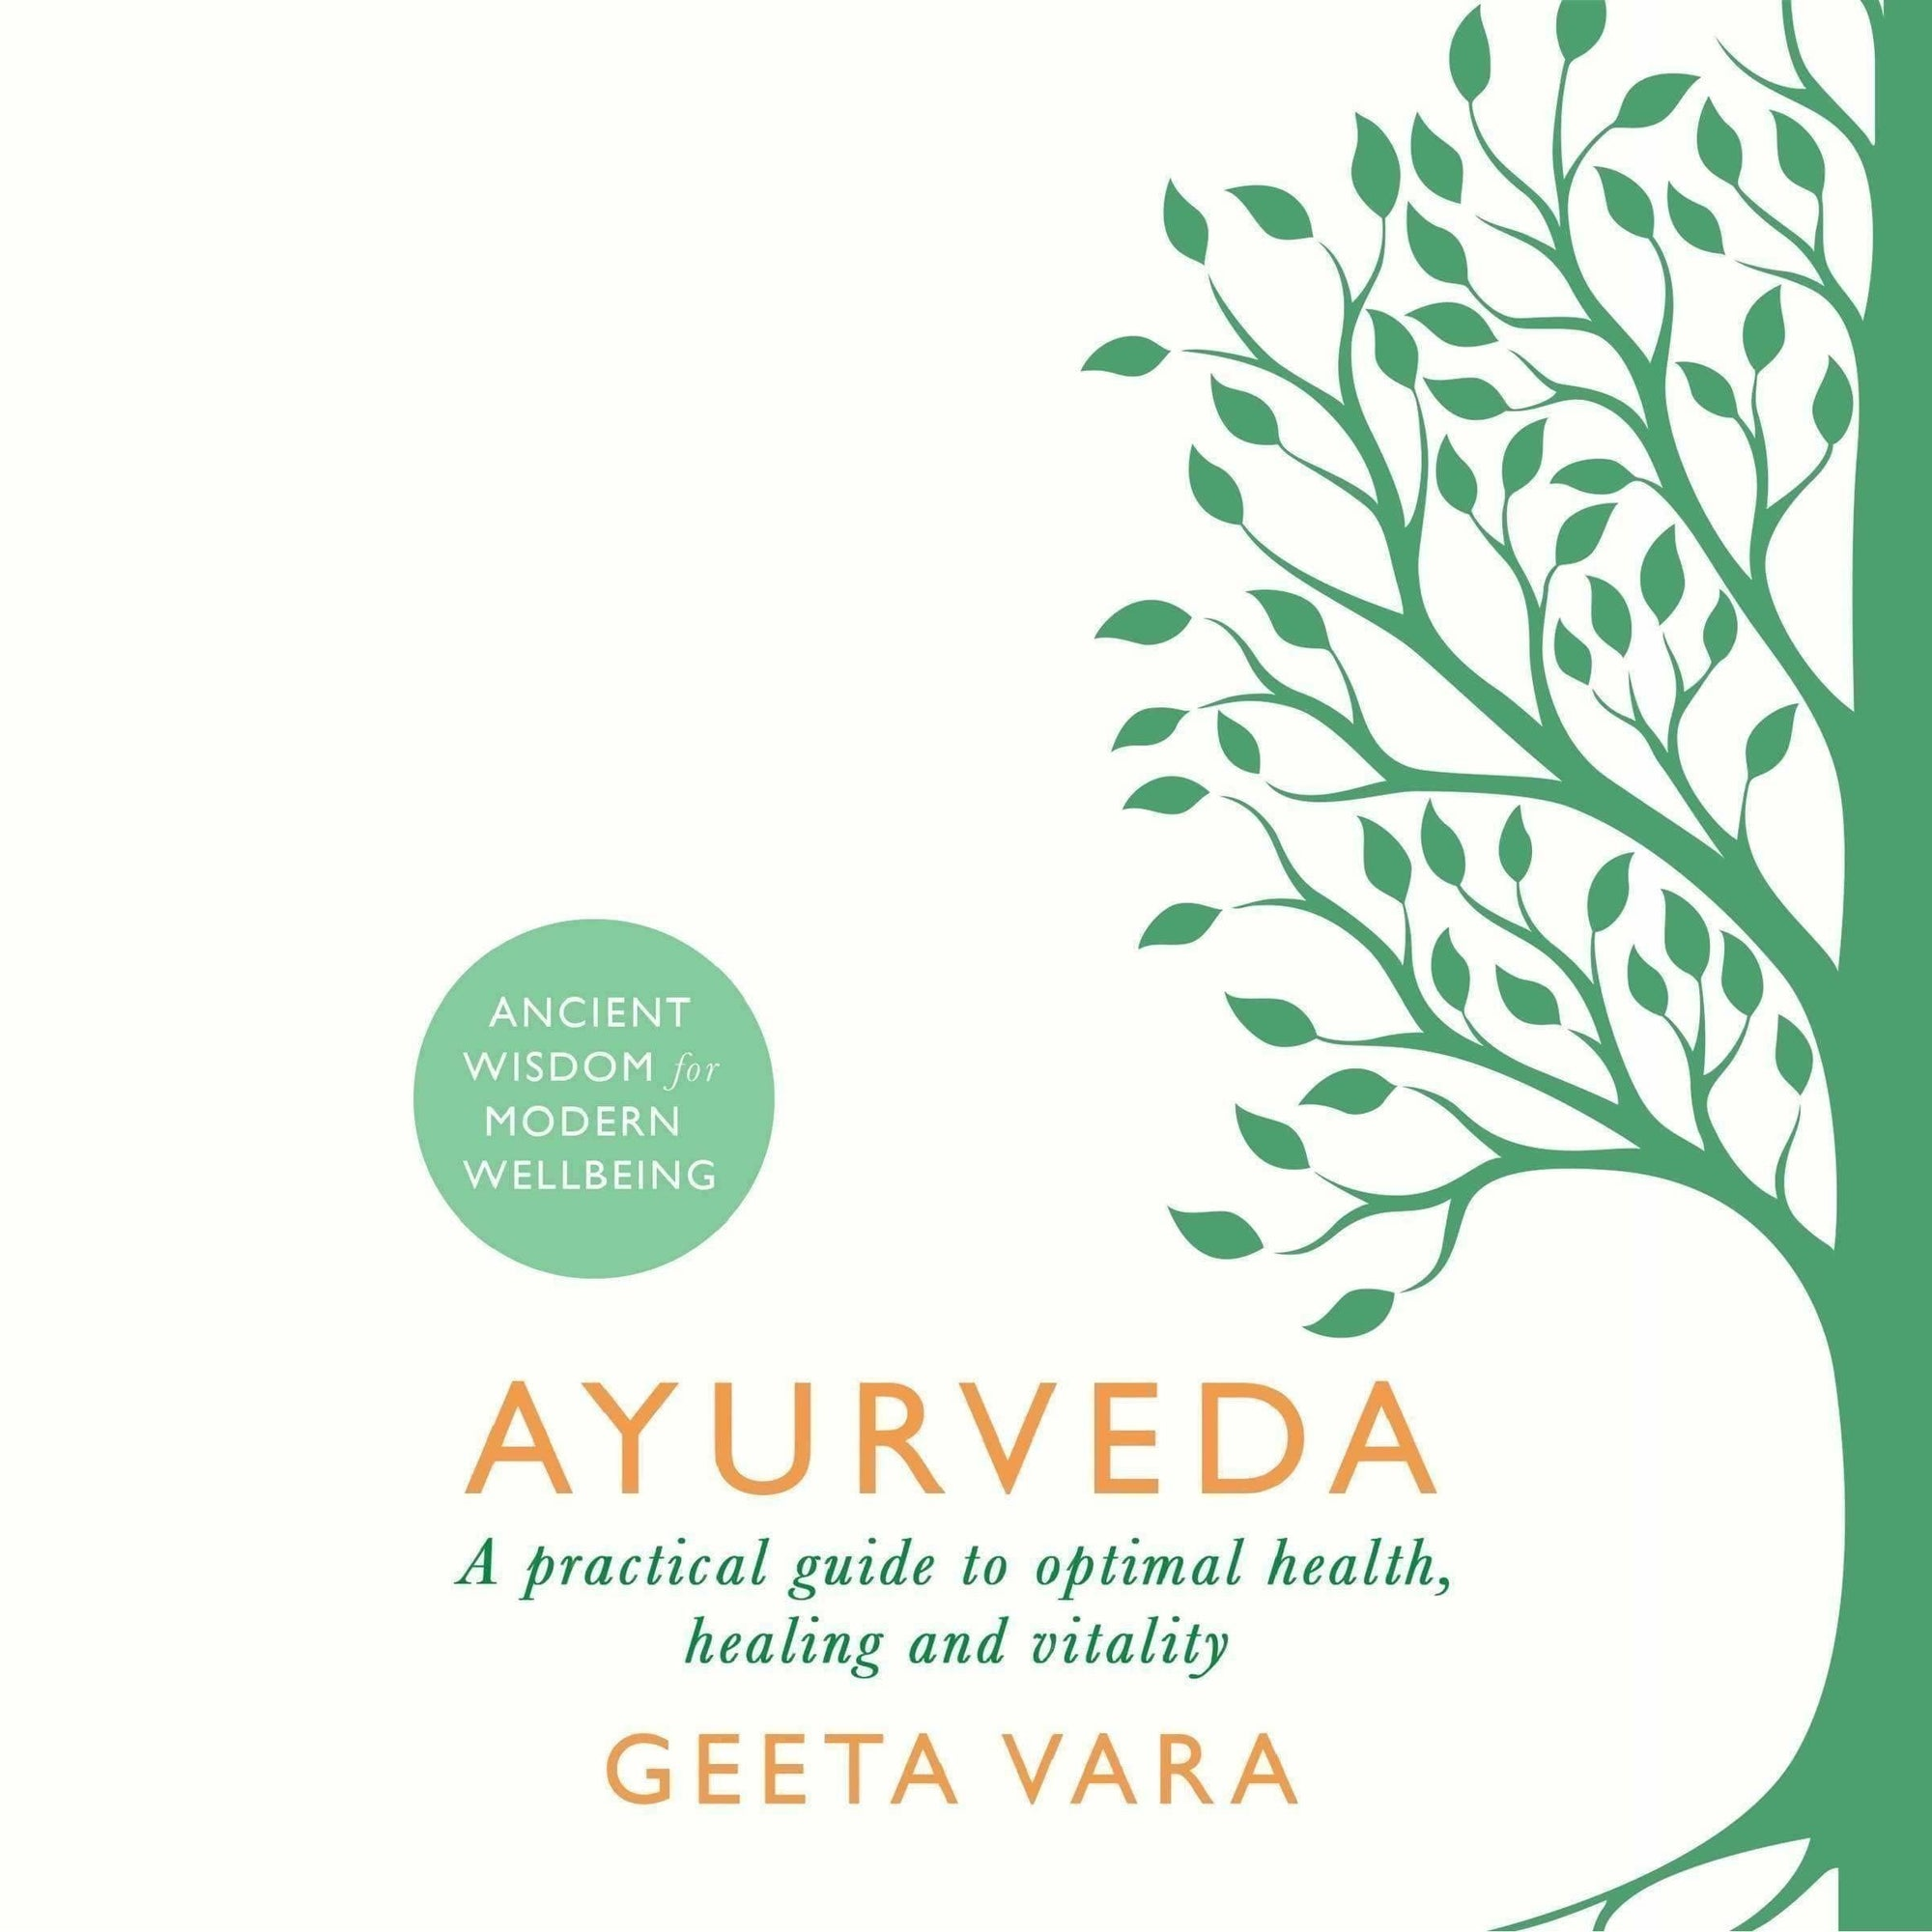 Ayurveda A Practical Guide to Optimal Health Healing and Vitality